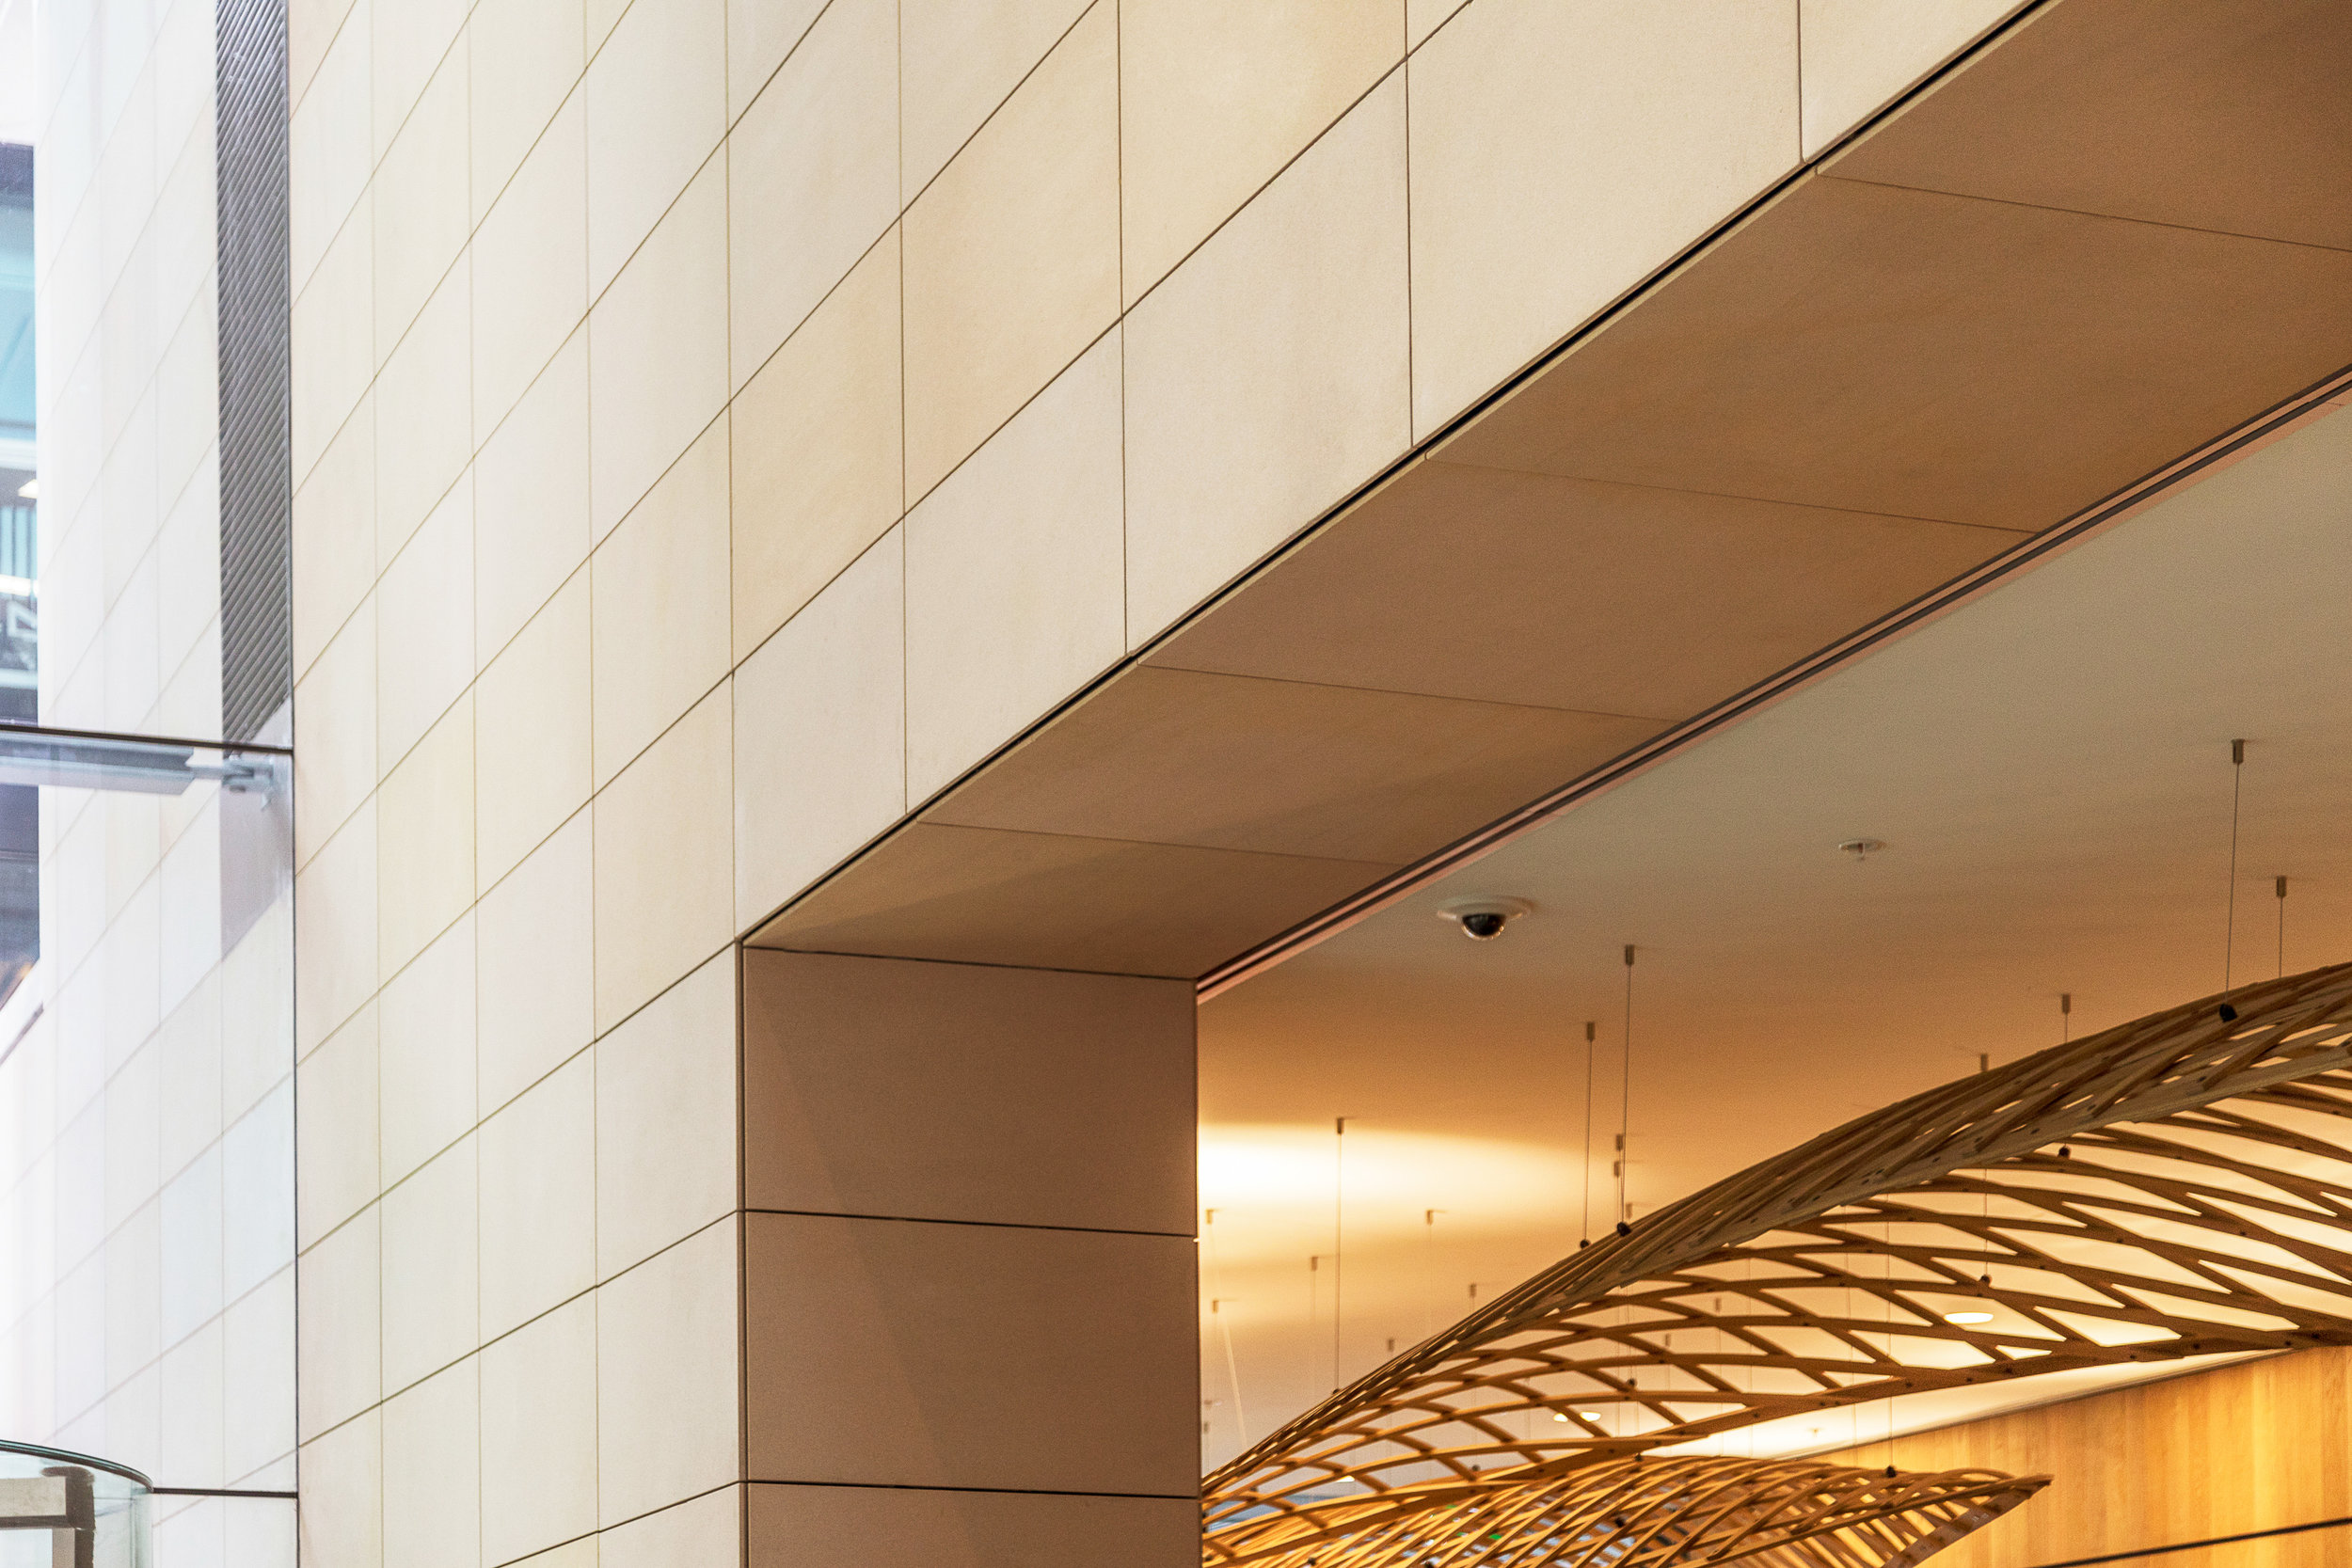 Barangaroo towers- piles creek cream sawn cladding with birdsmouth detail 1 (3).jpg